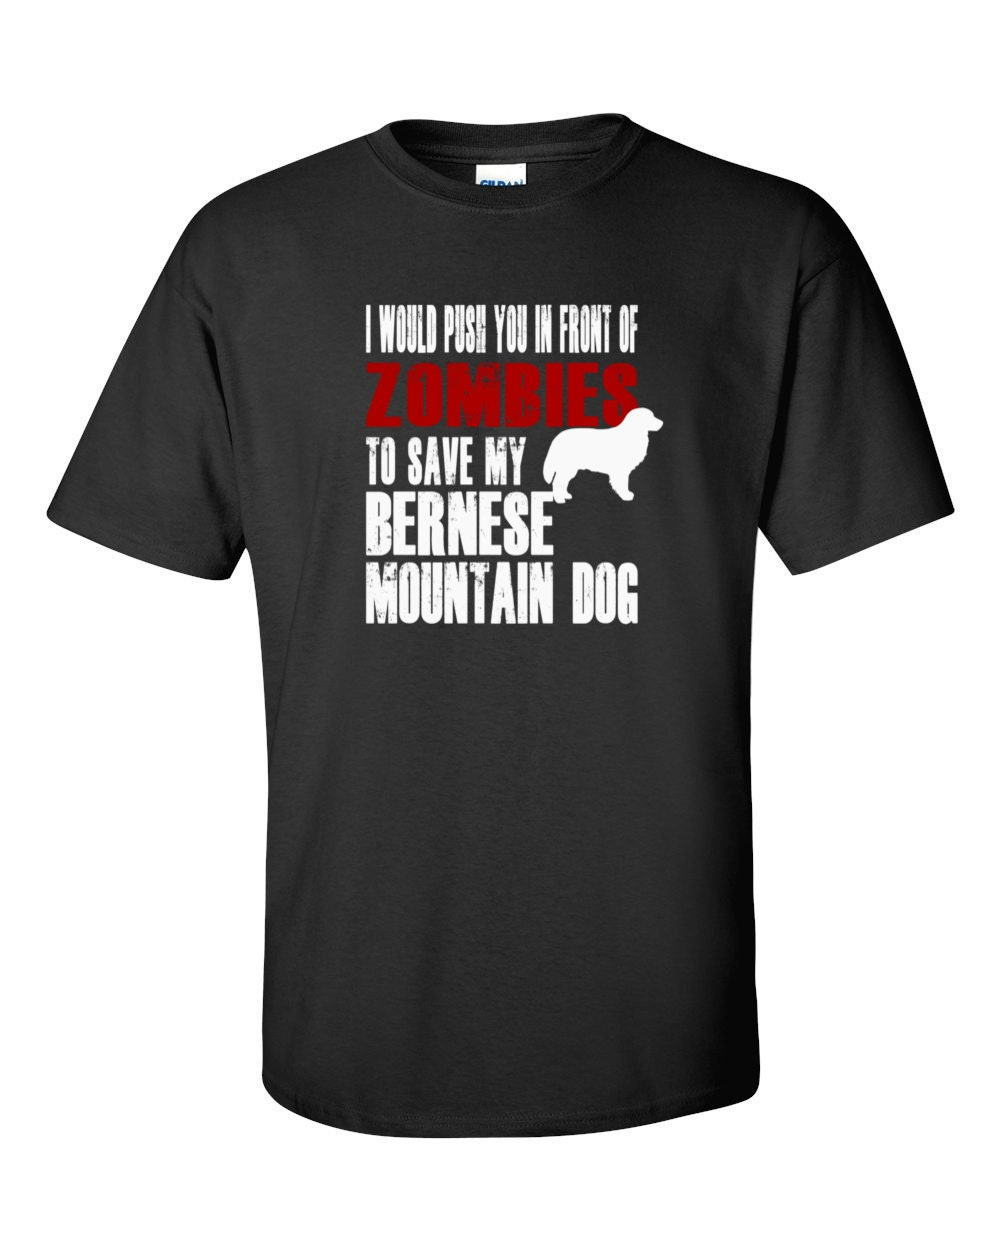 Bernese Mountain Dog T-shirt - I Would Push You In Front Of Zombies To Save My Bernese Mountain Dog - My Dog Bernese Mountain Dog T-shirt